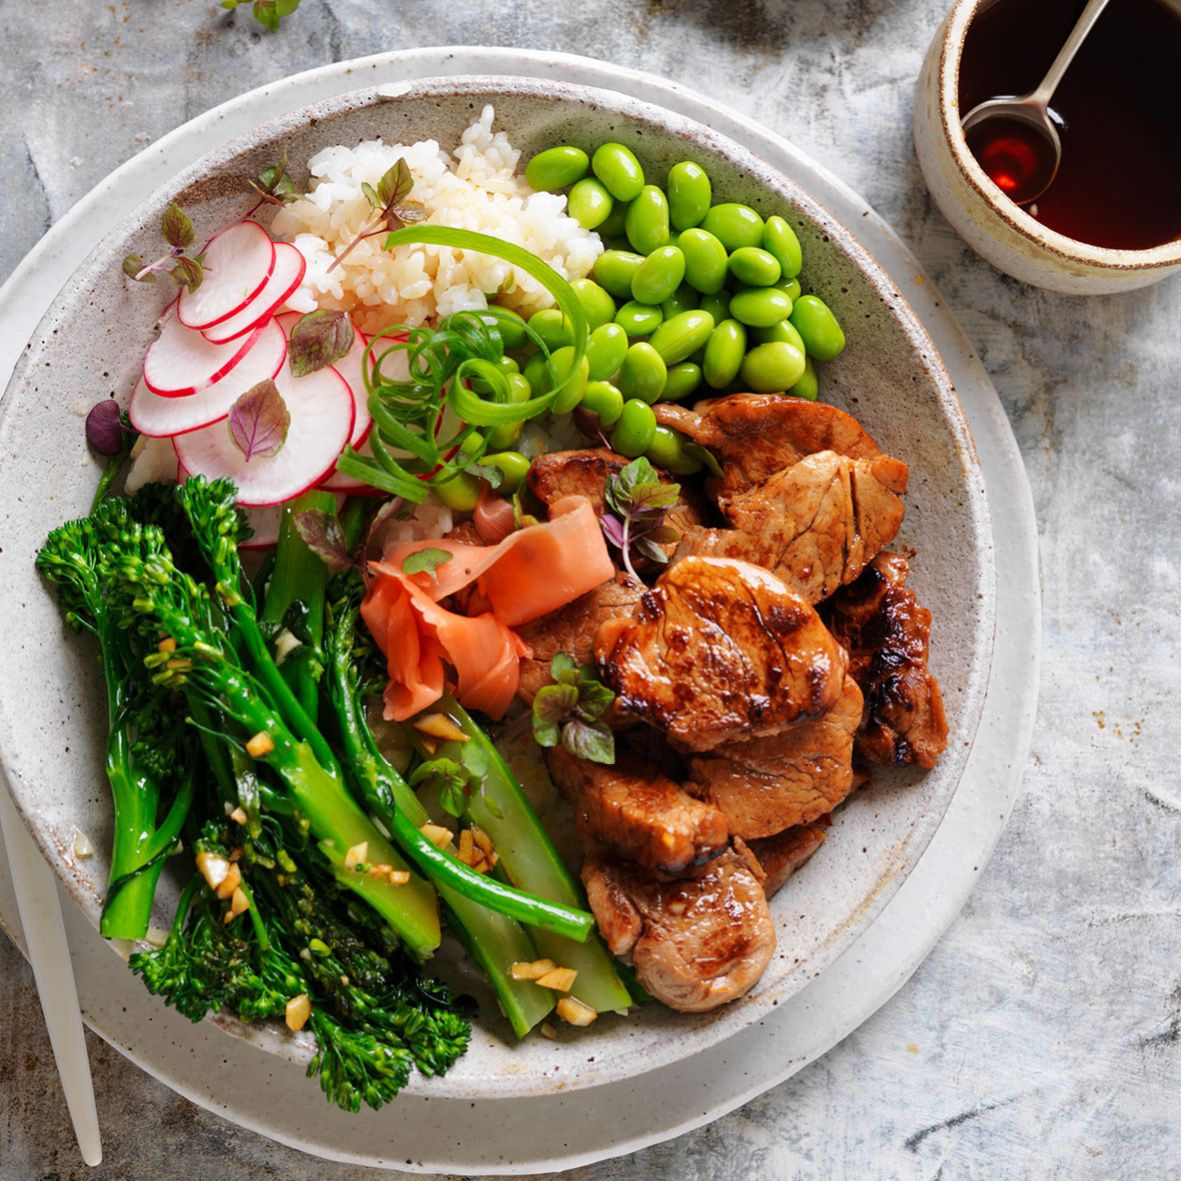 Pork_teriyaki_broccolini_and_sushi_rice_bowls.jpg